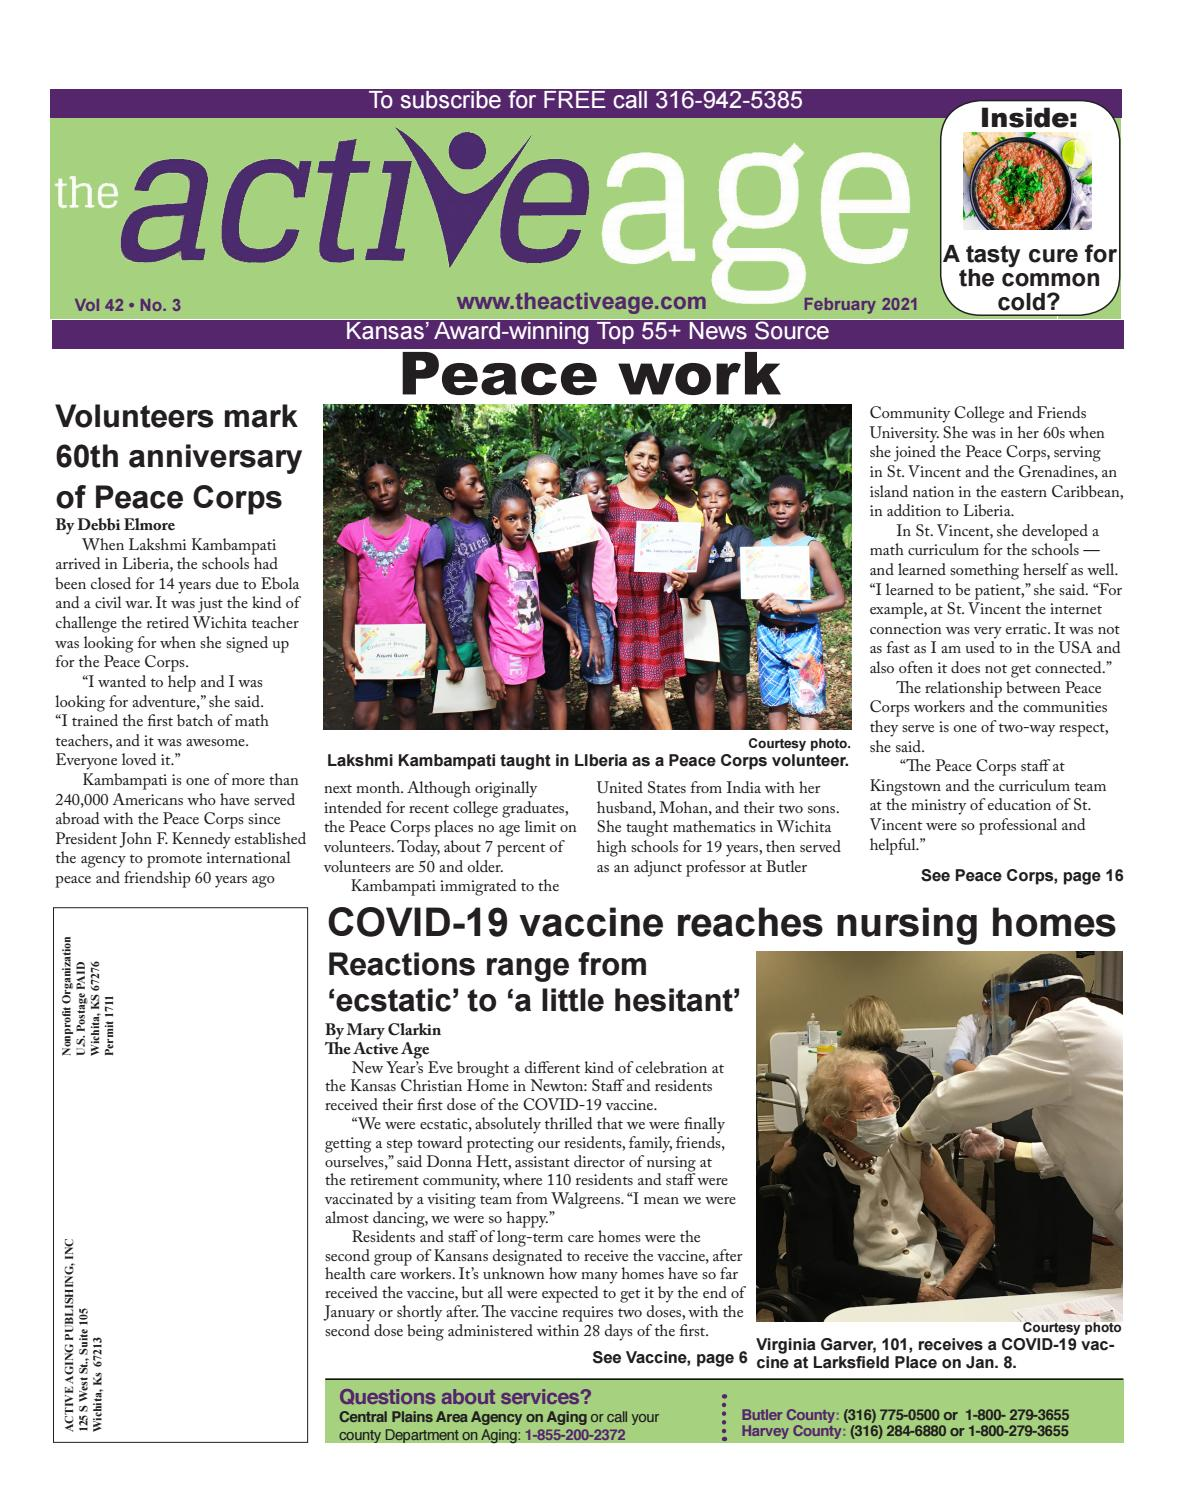 Free Christmas Dinner 2021 In Wichita Ks For The Poor February 2021 By The Active Age Issuu